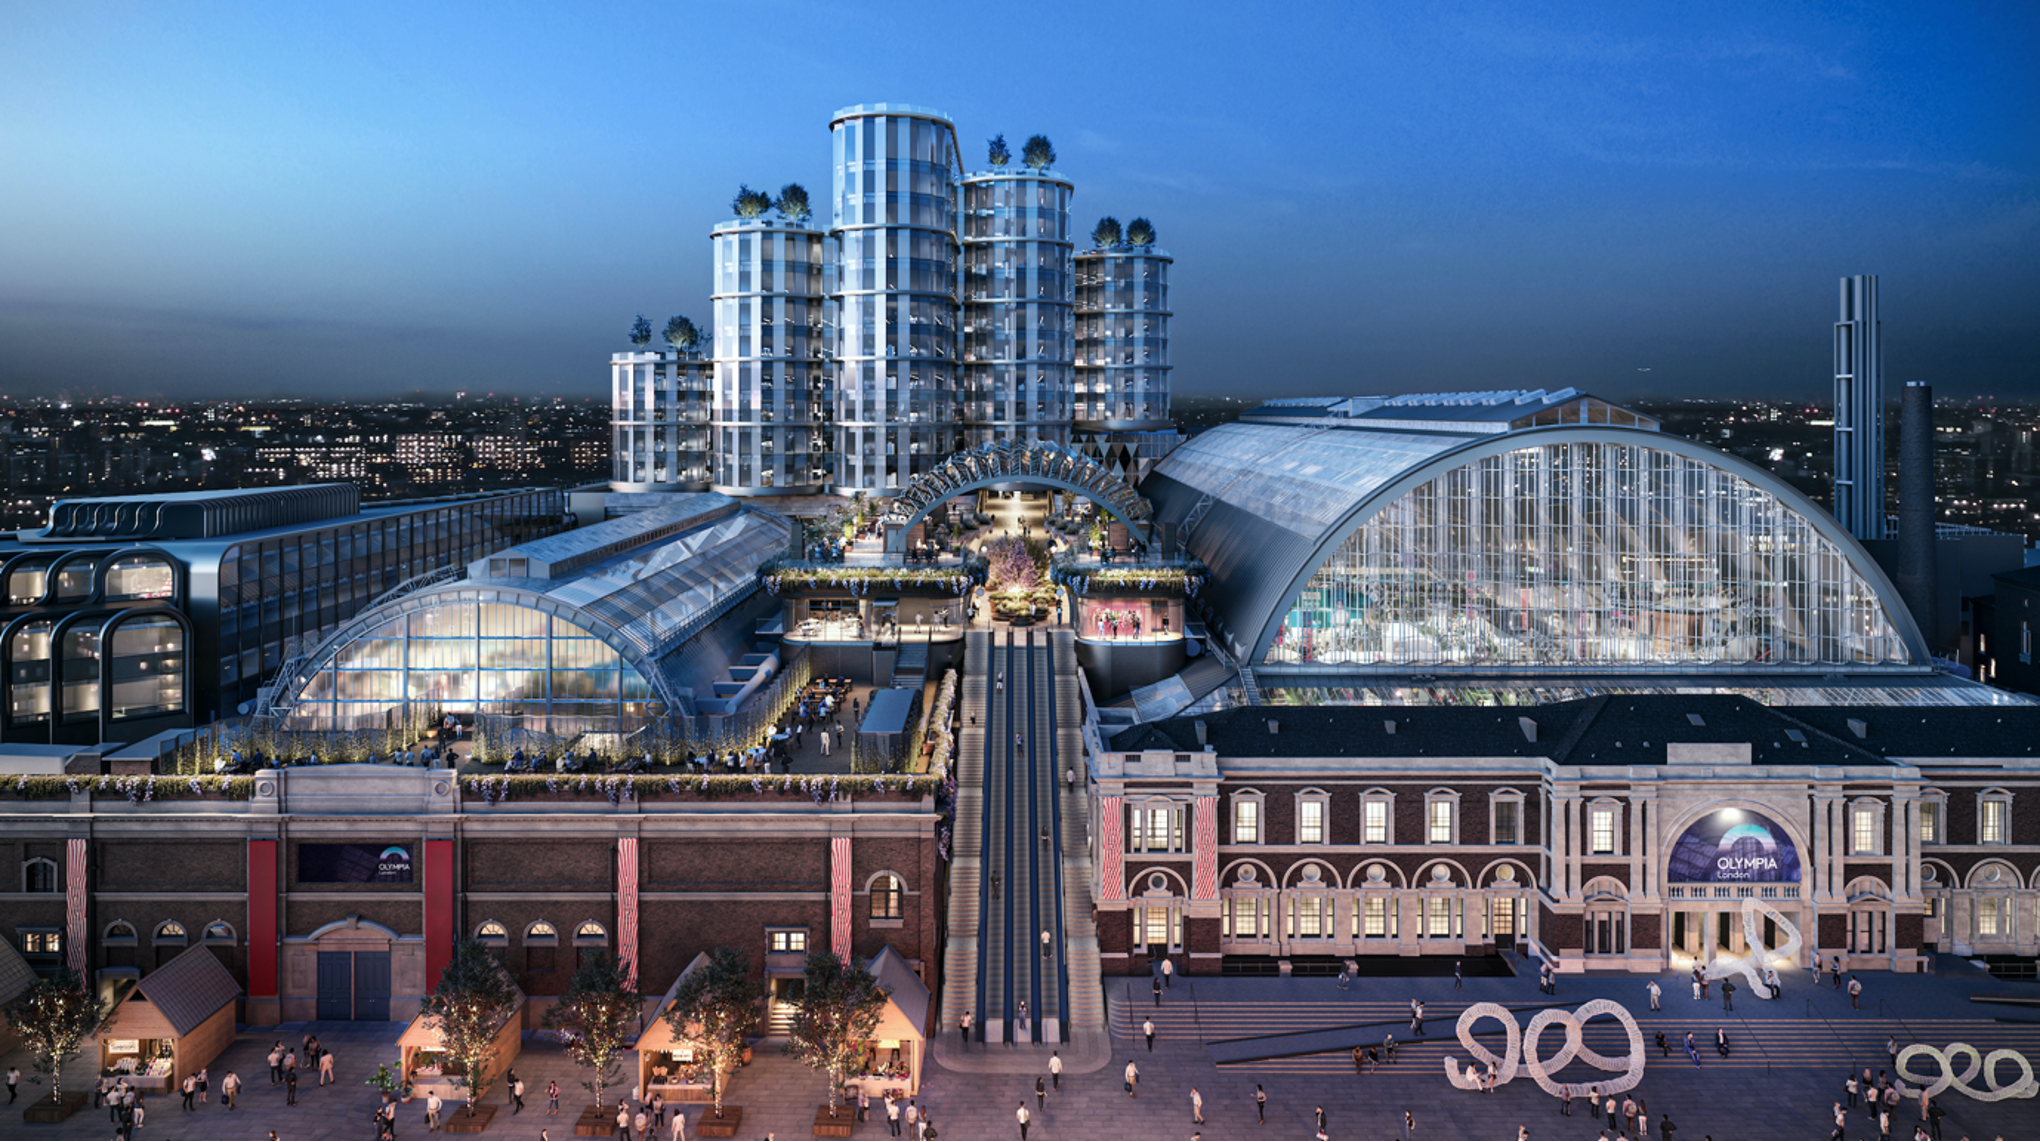 New Live Music Venue To Be Unveiled At Olympia London Lbhf